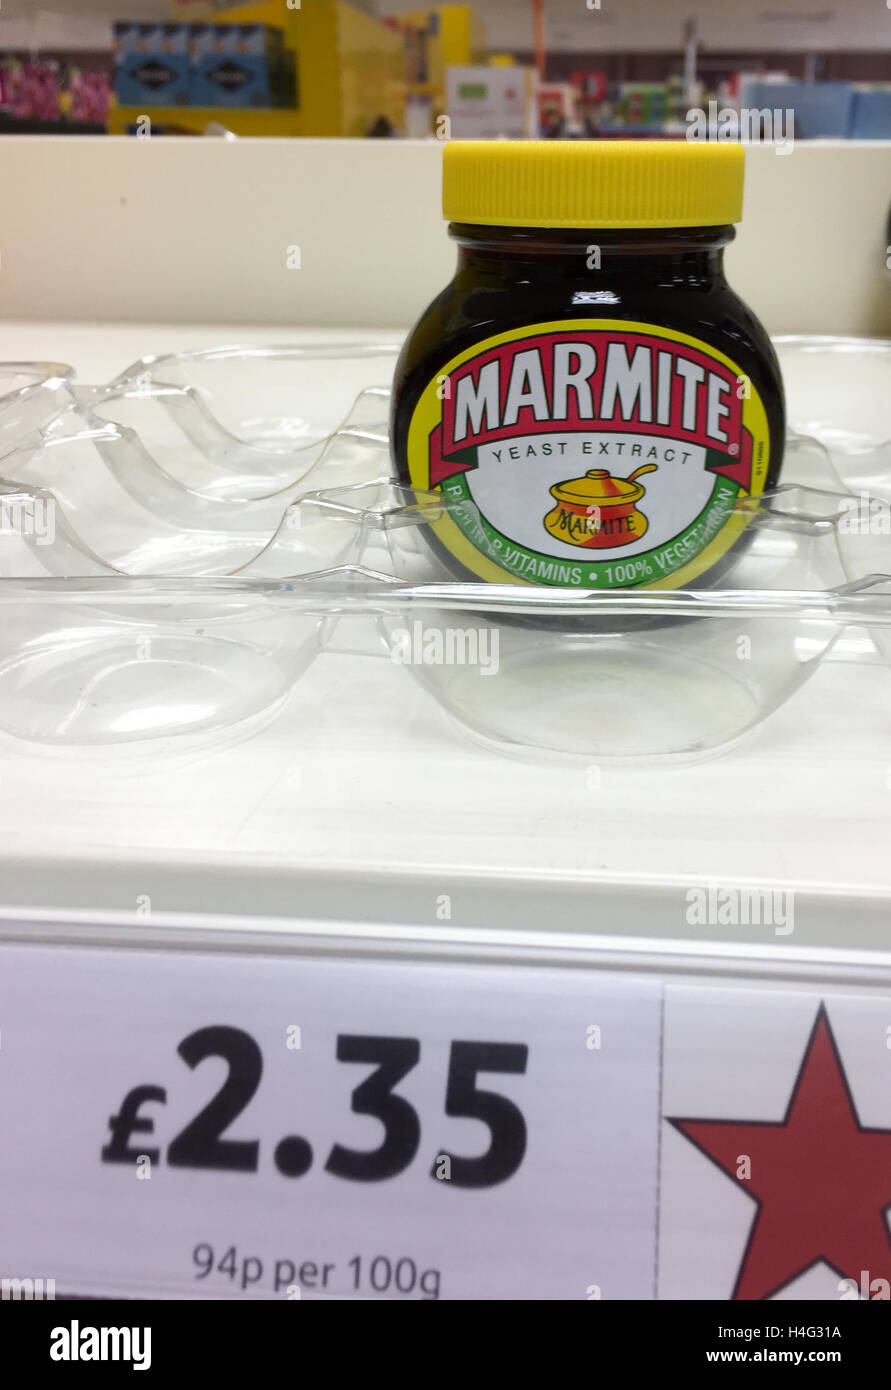 The  last jar of Marmite on sale at Tesco in Cambridge after a dispute with Unilever. - Stock Image